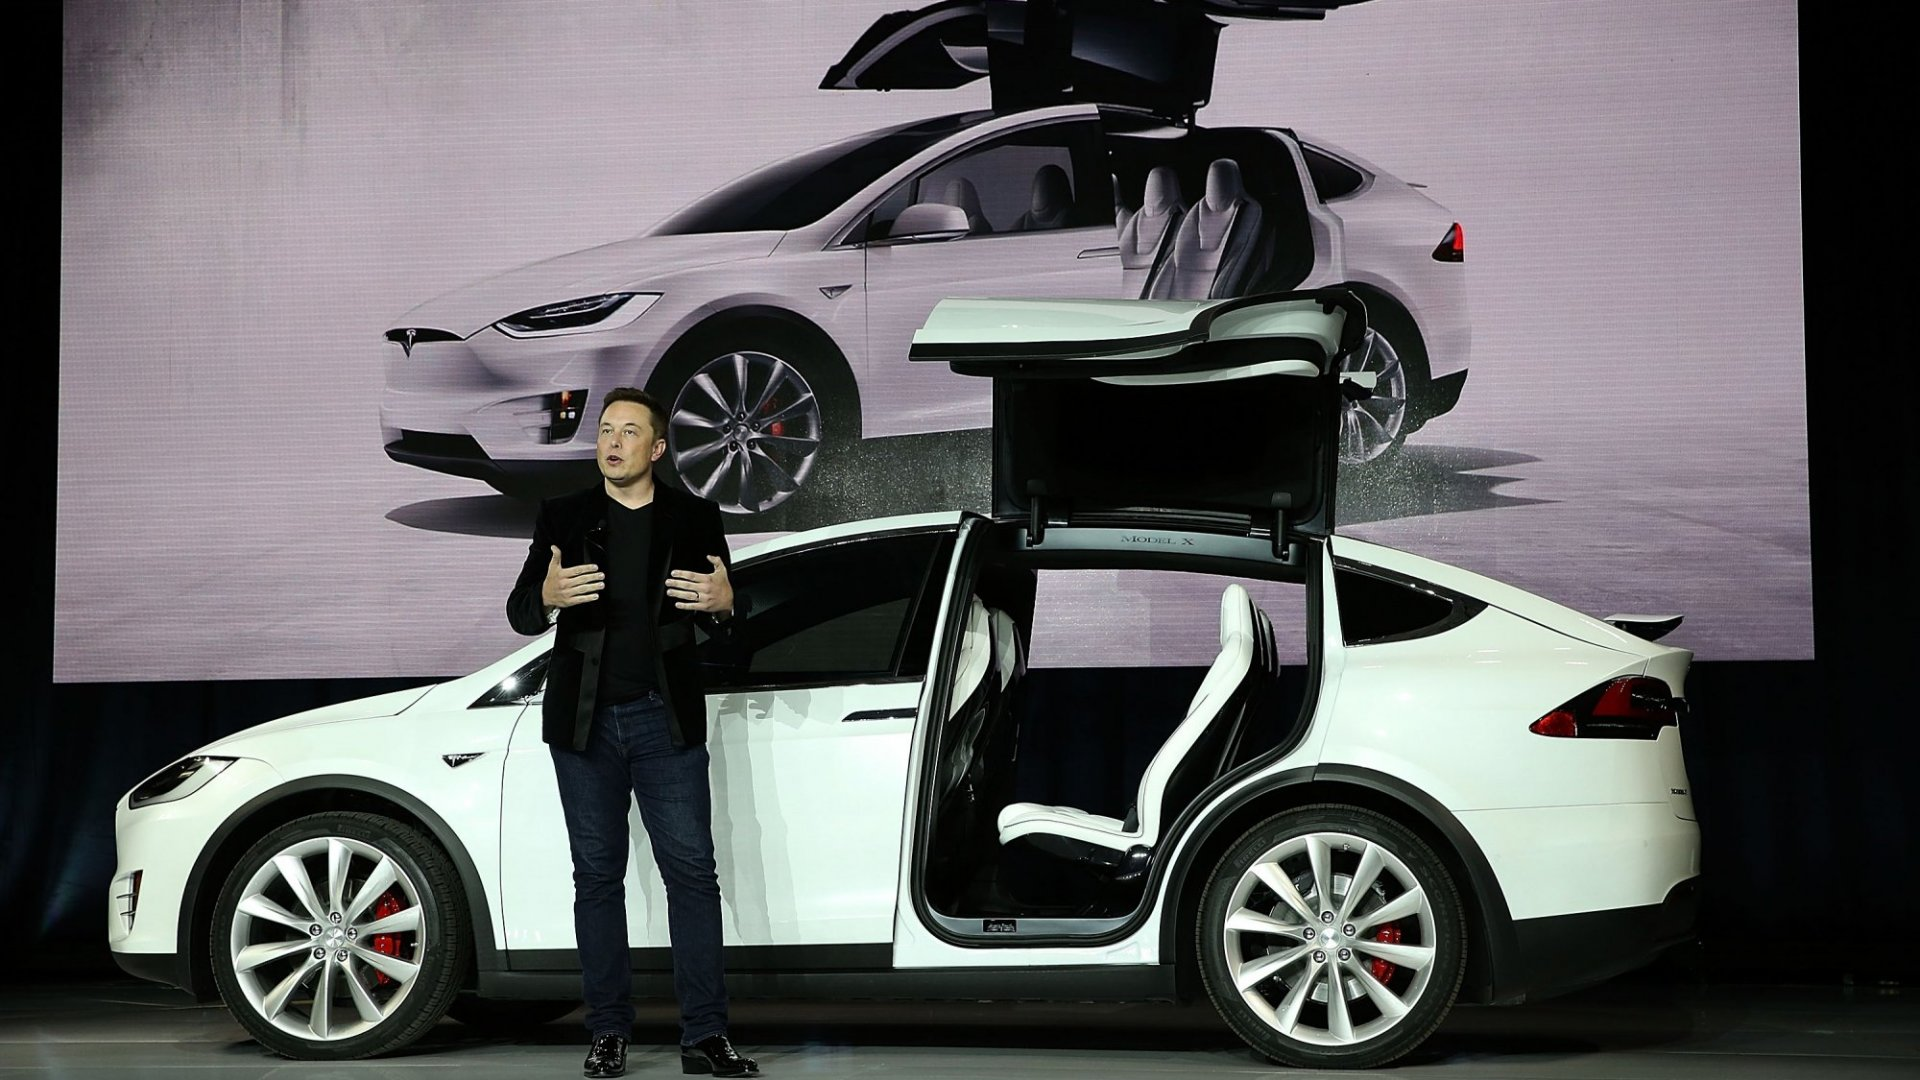 Why Elon Musk Spends 80 Percent of His Time on This 1 Activity